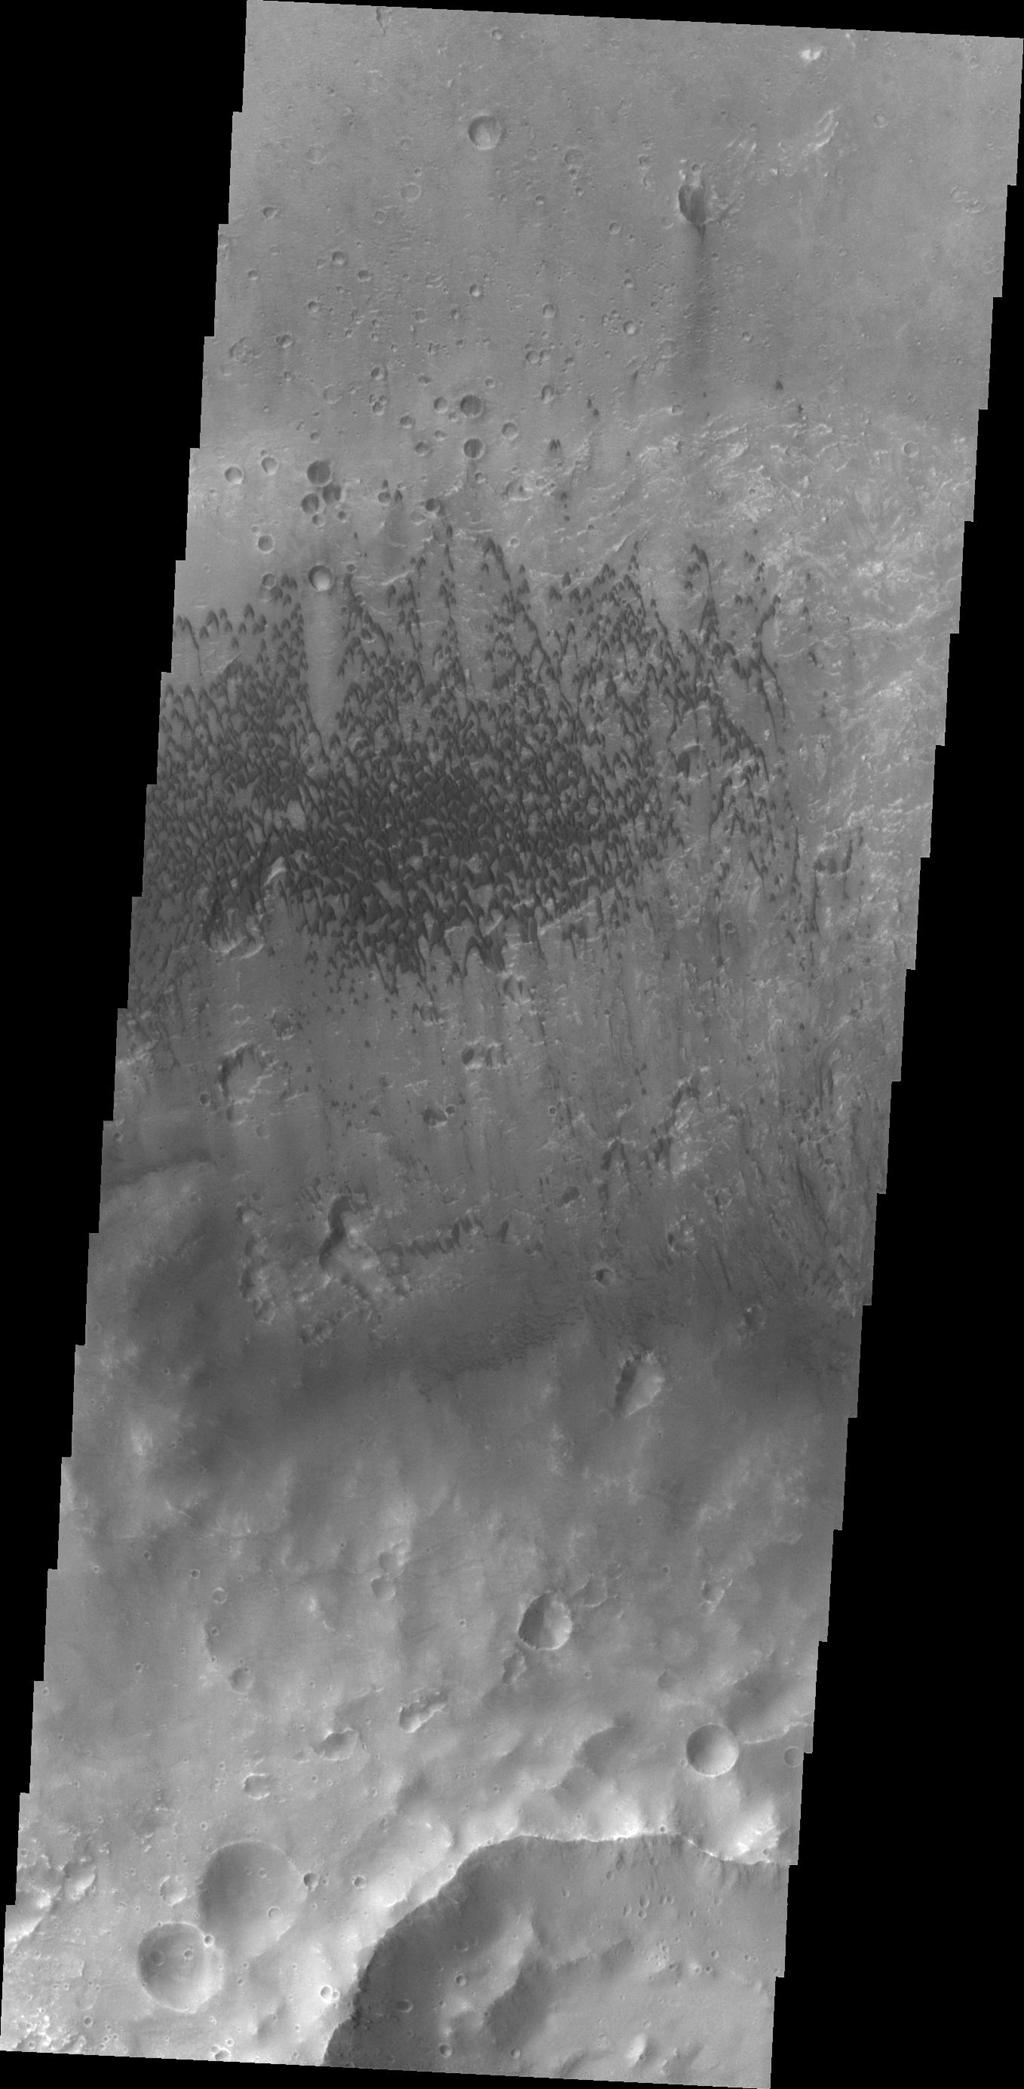 Sand dunes located on the floor of McLaughlin Crater as seen by NASA's 2001 Mars Odyssey spacecraft.